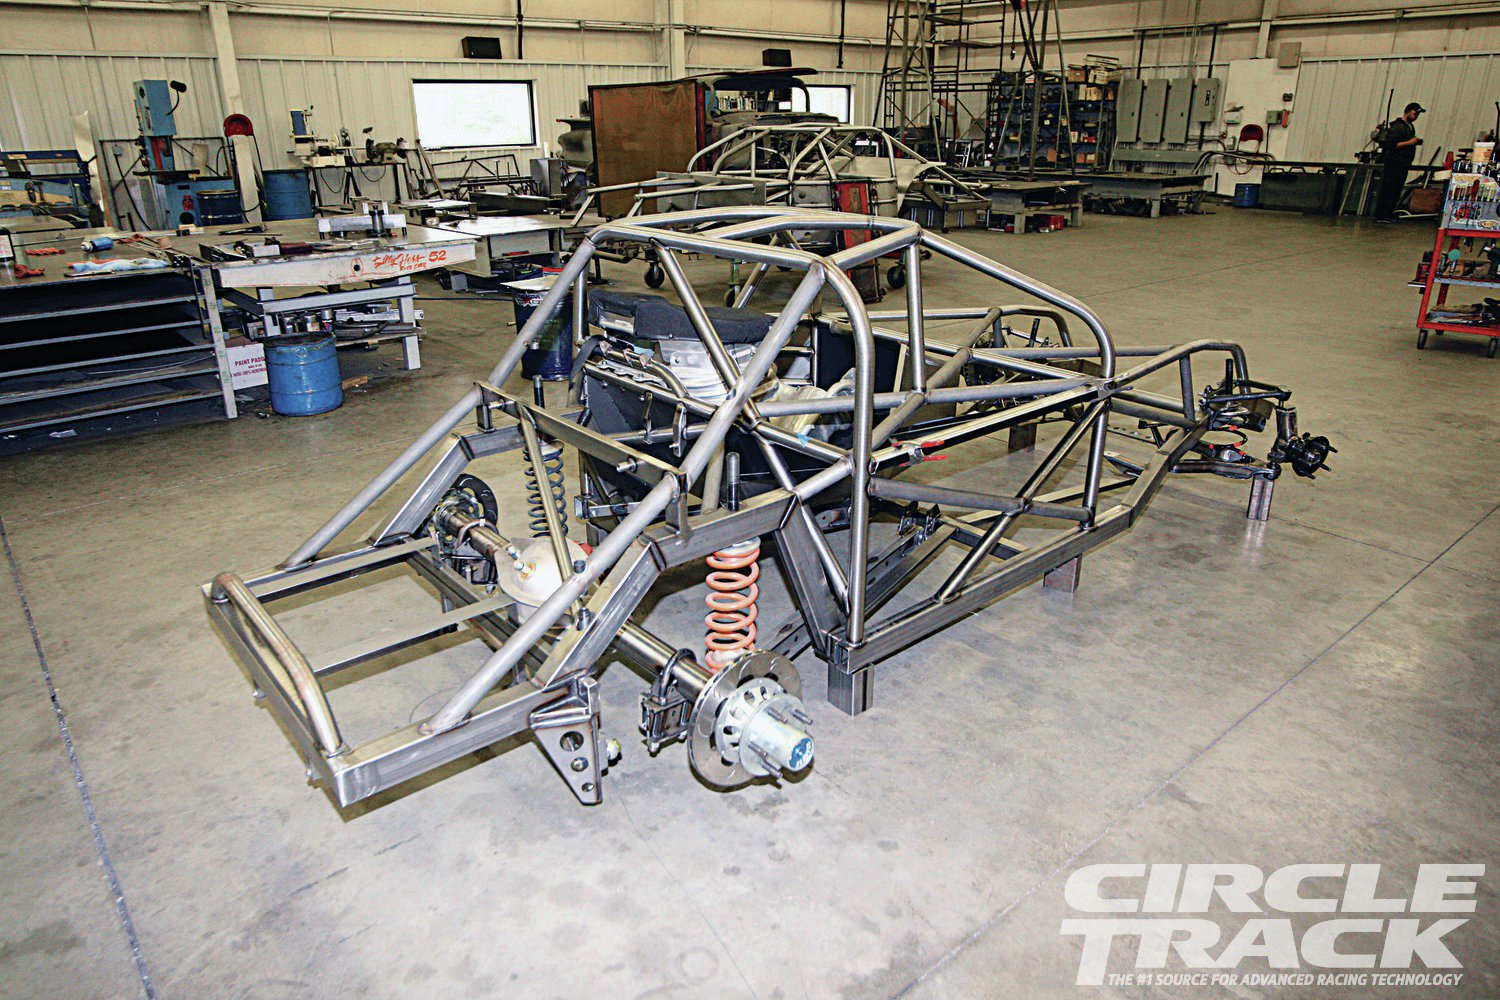 28. The next step in the construction of this brand-new Super Late will be hanging the body, which we will cover in a future issue of Circle Track. So make sure to stay tuned.